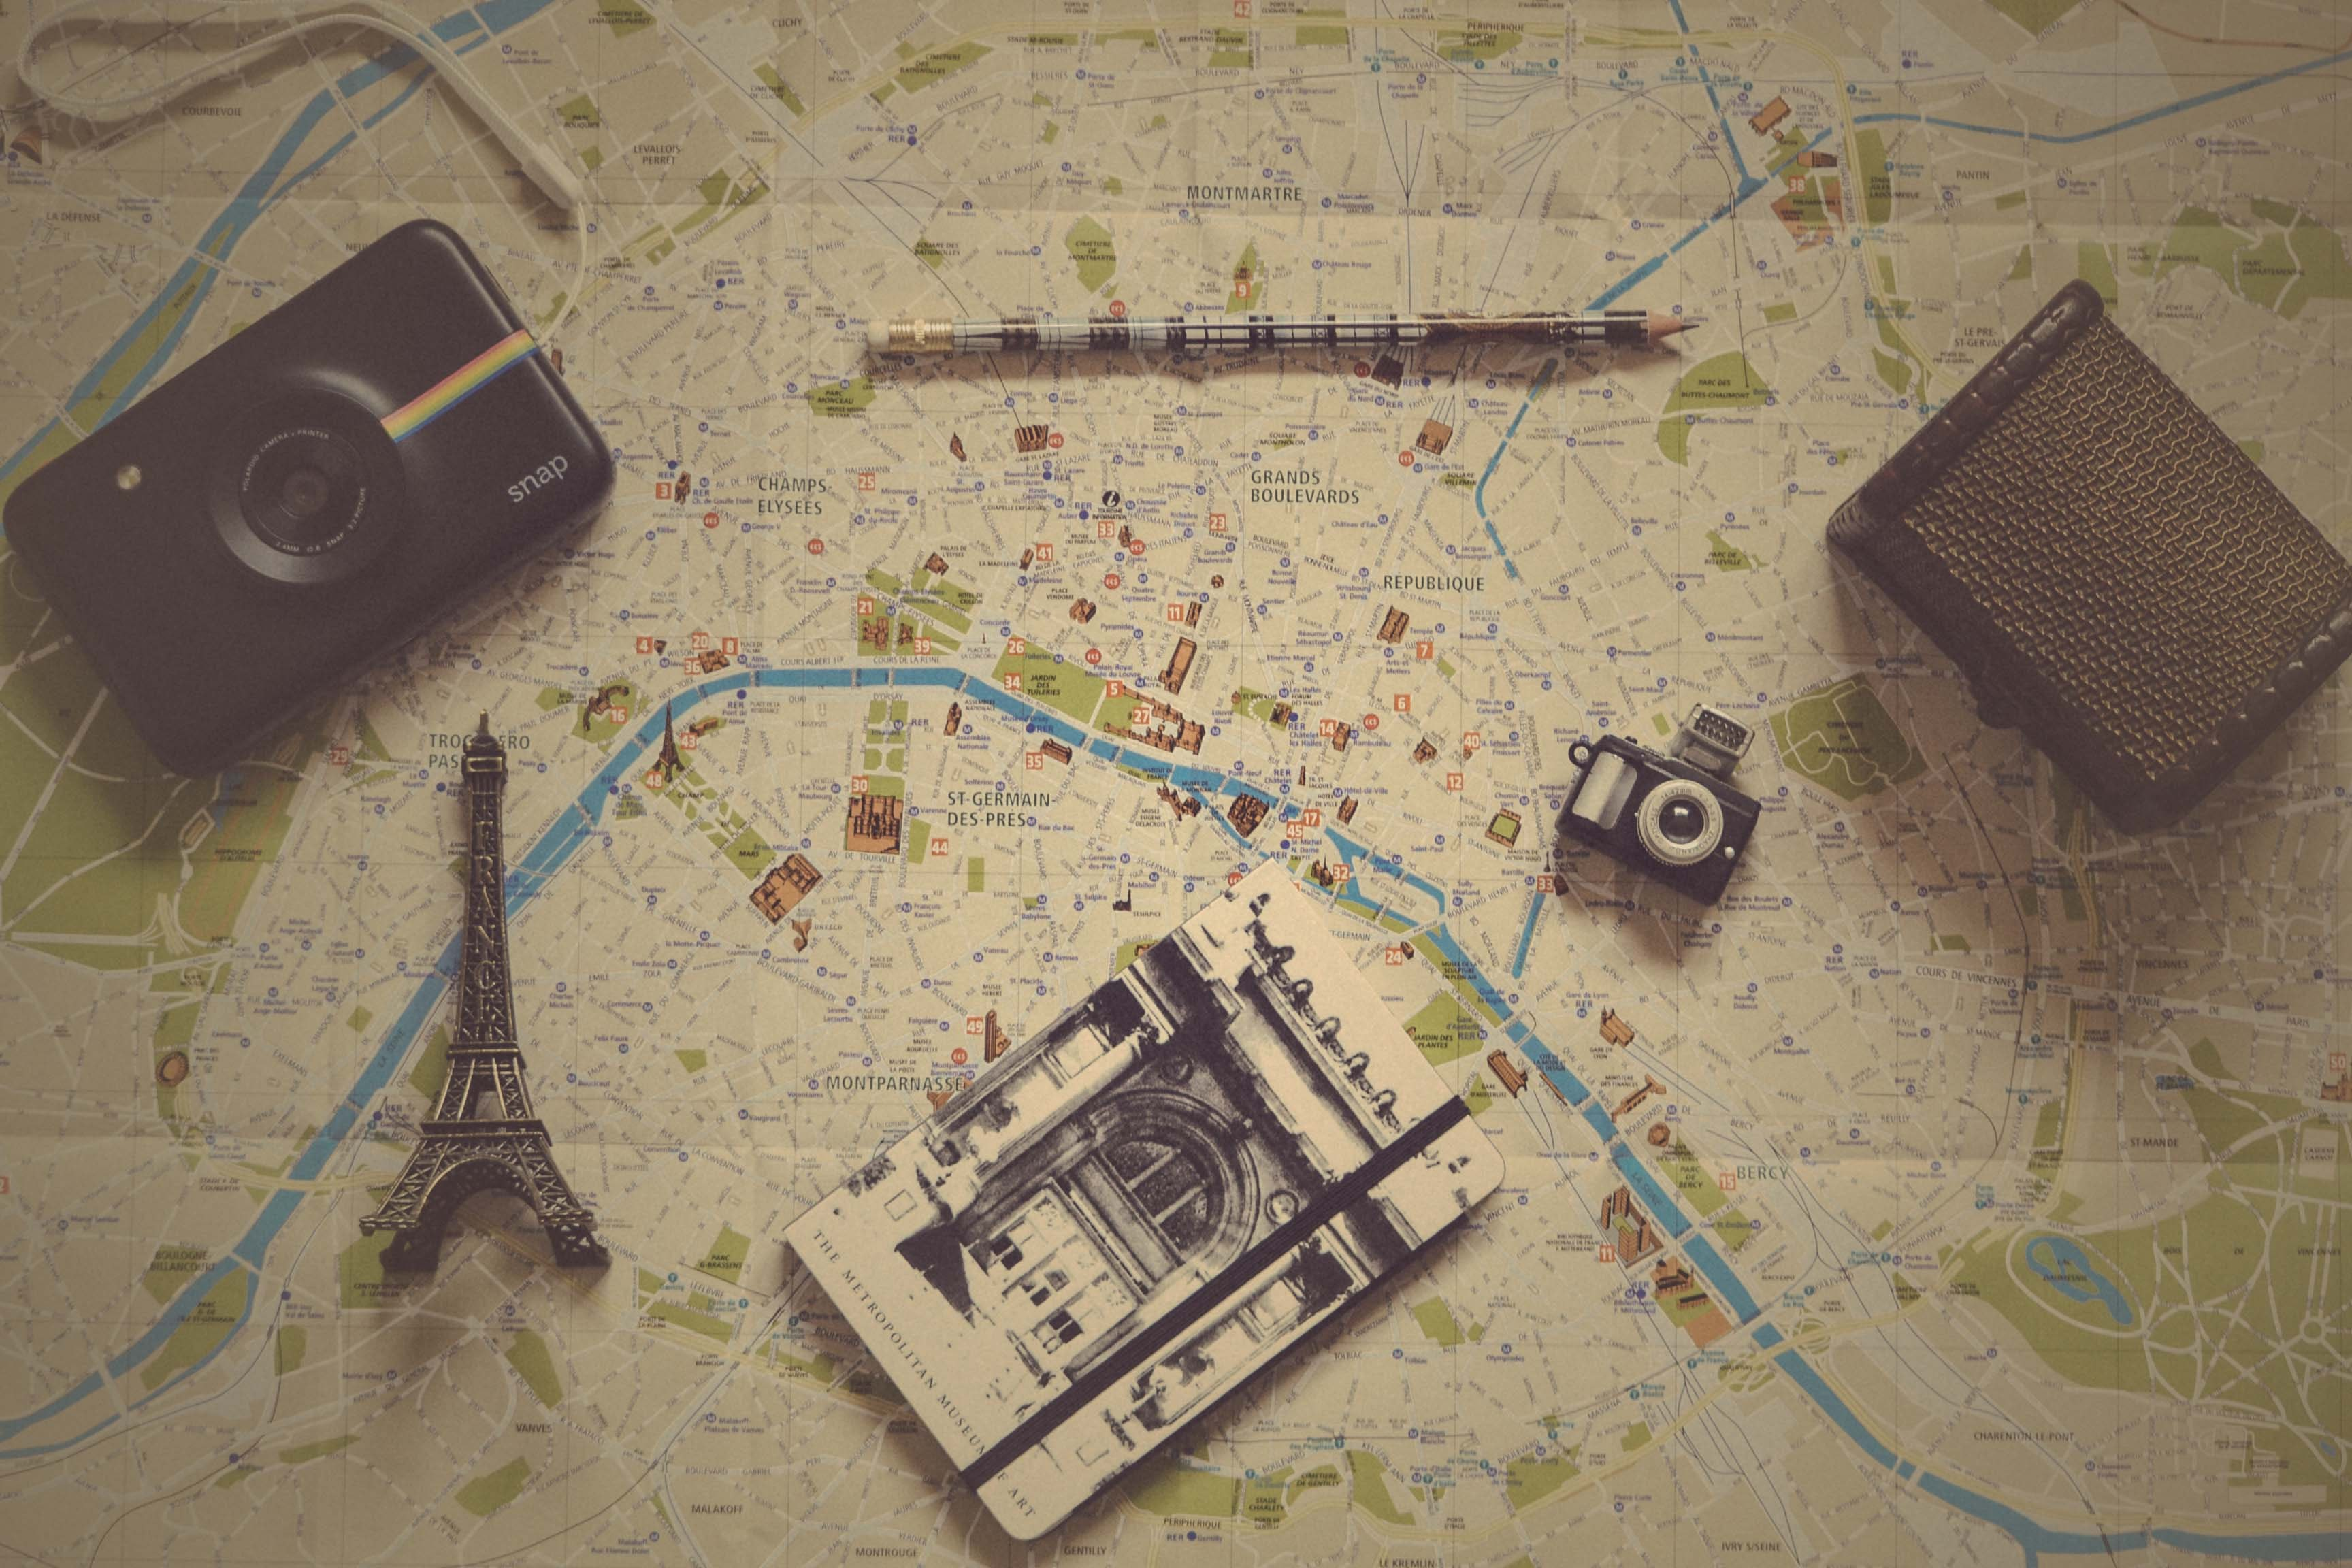 Vintage photo of small trinkets, a camera, and a journal on a map